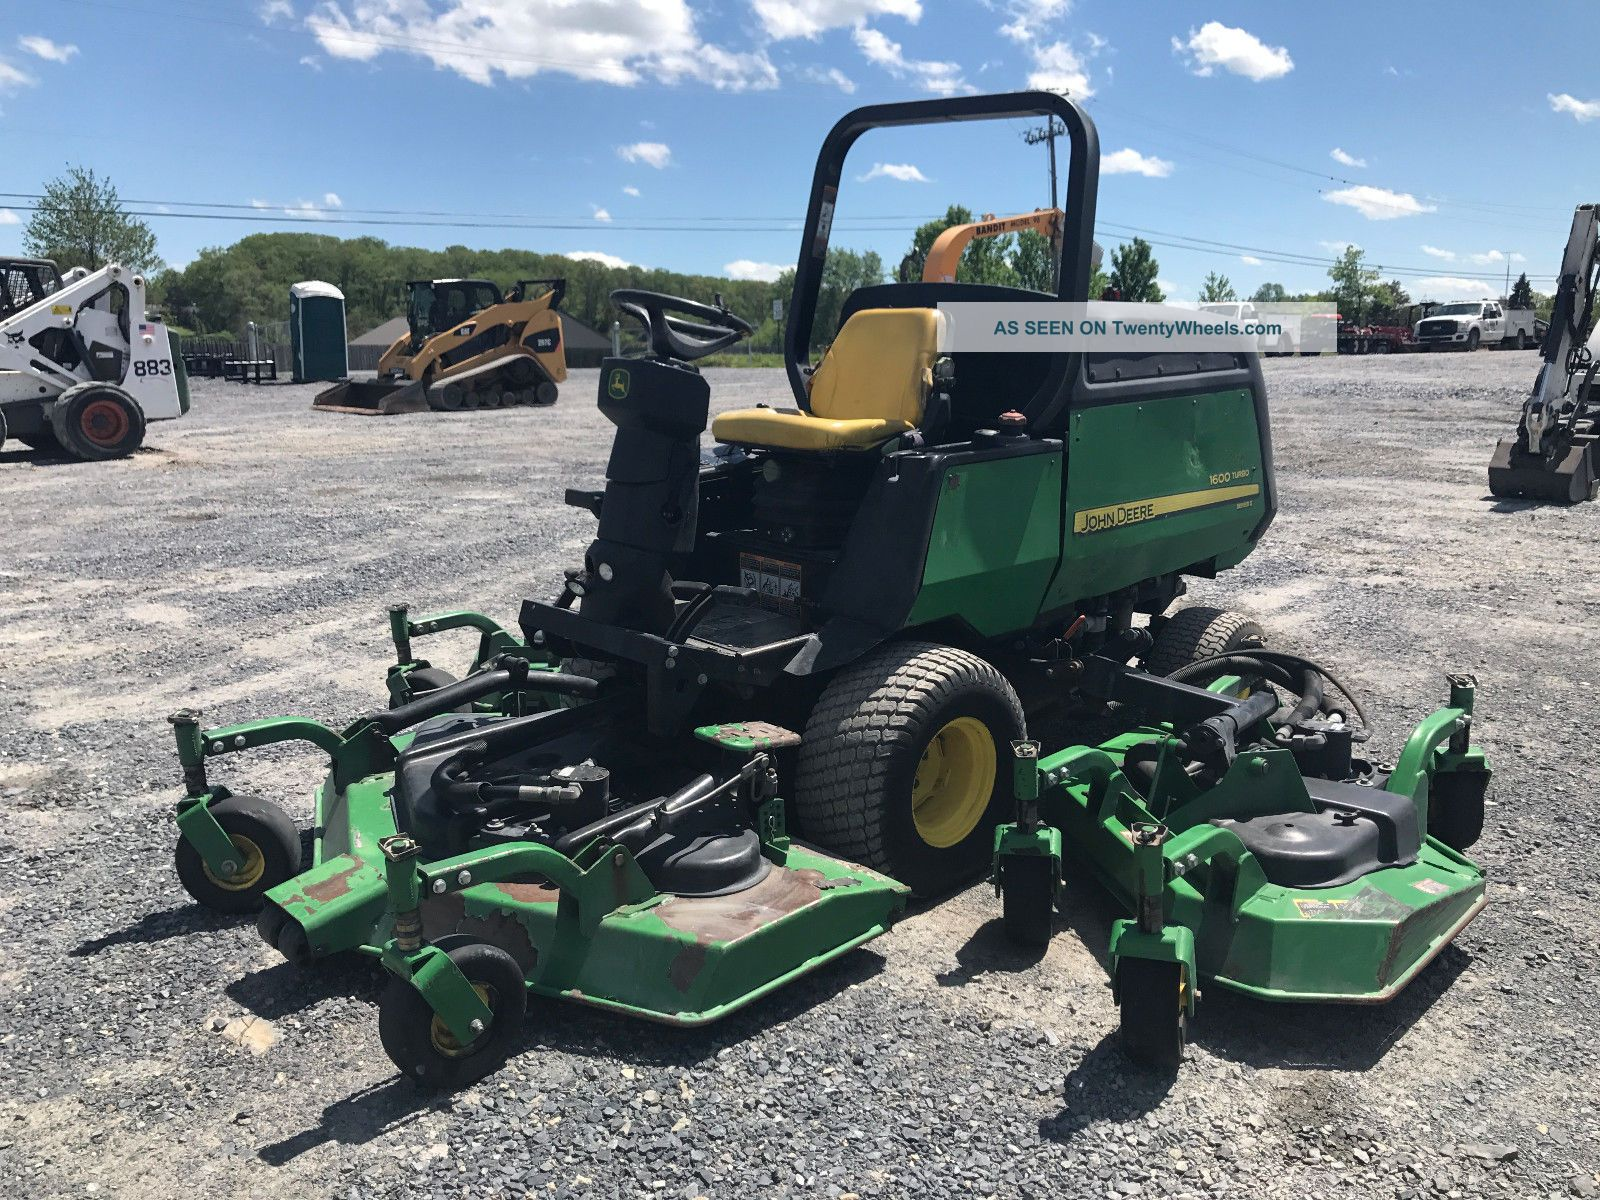 2008 John Deere 1600 Turbo Series 2 Wide Area Mower Tractors photo